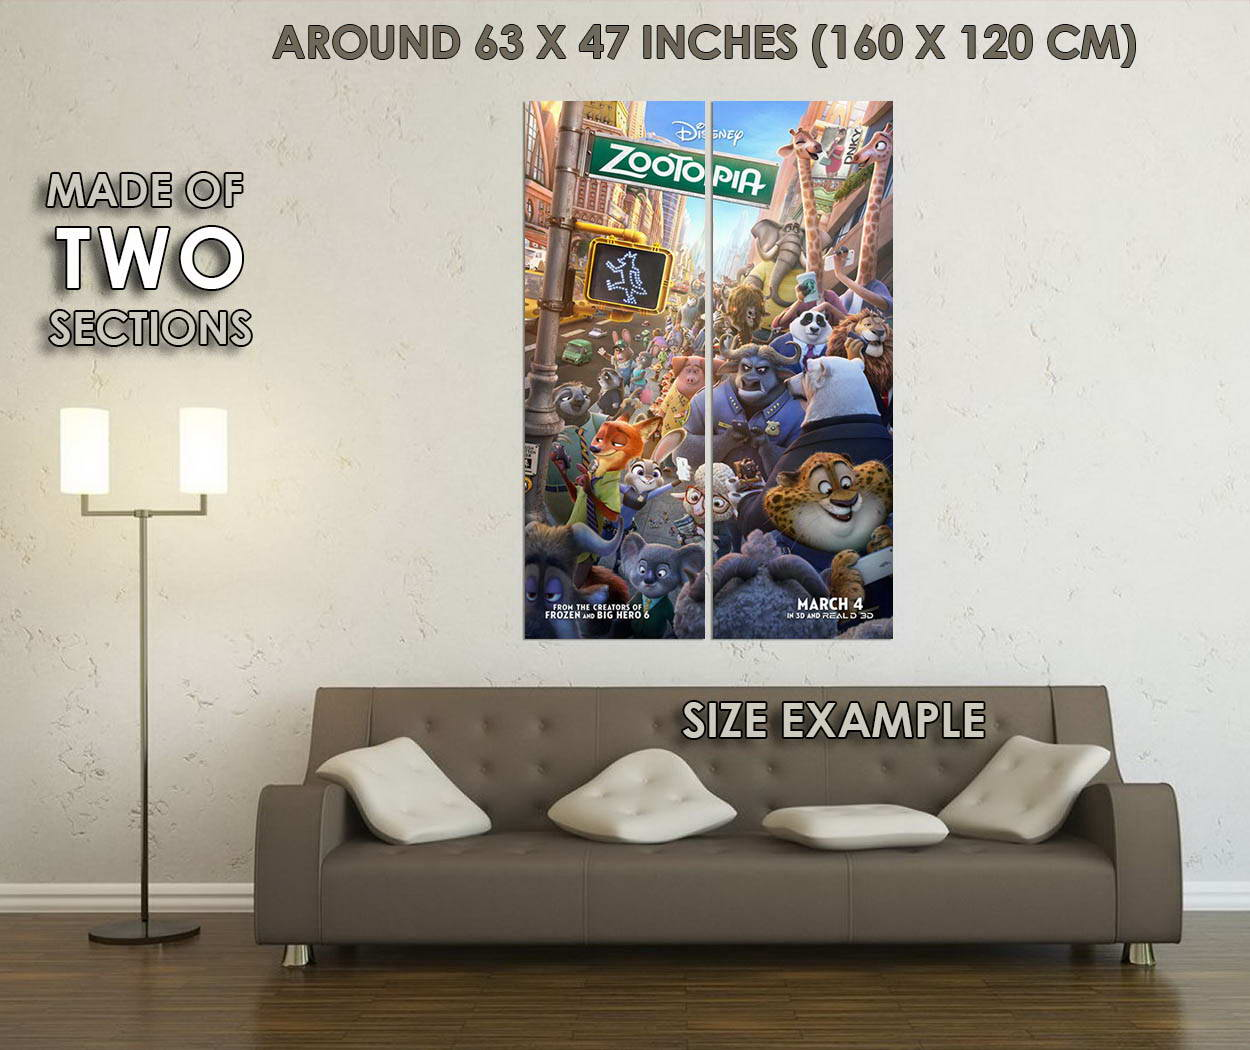 10333-Zootopia-Cartoon-Movie-Judy-Hopps-Nick-Wilde-LAMINATED-POSTER-CA thumbnail 6